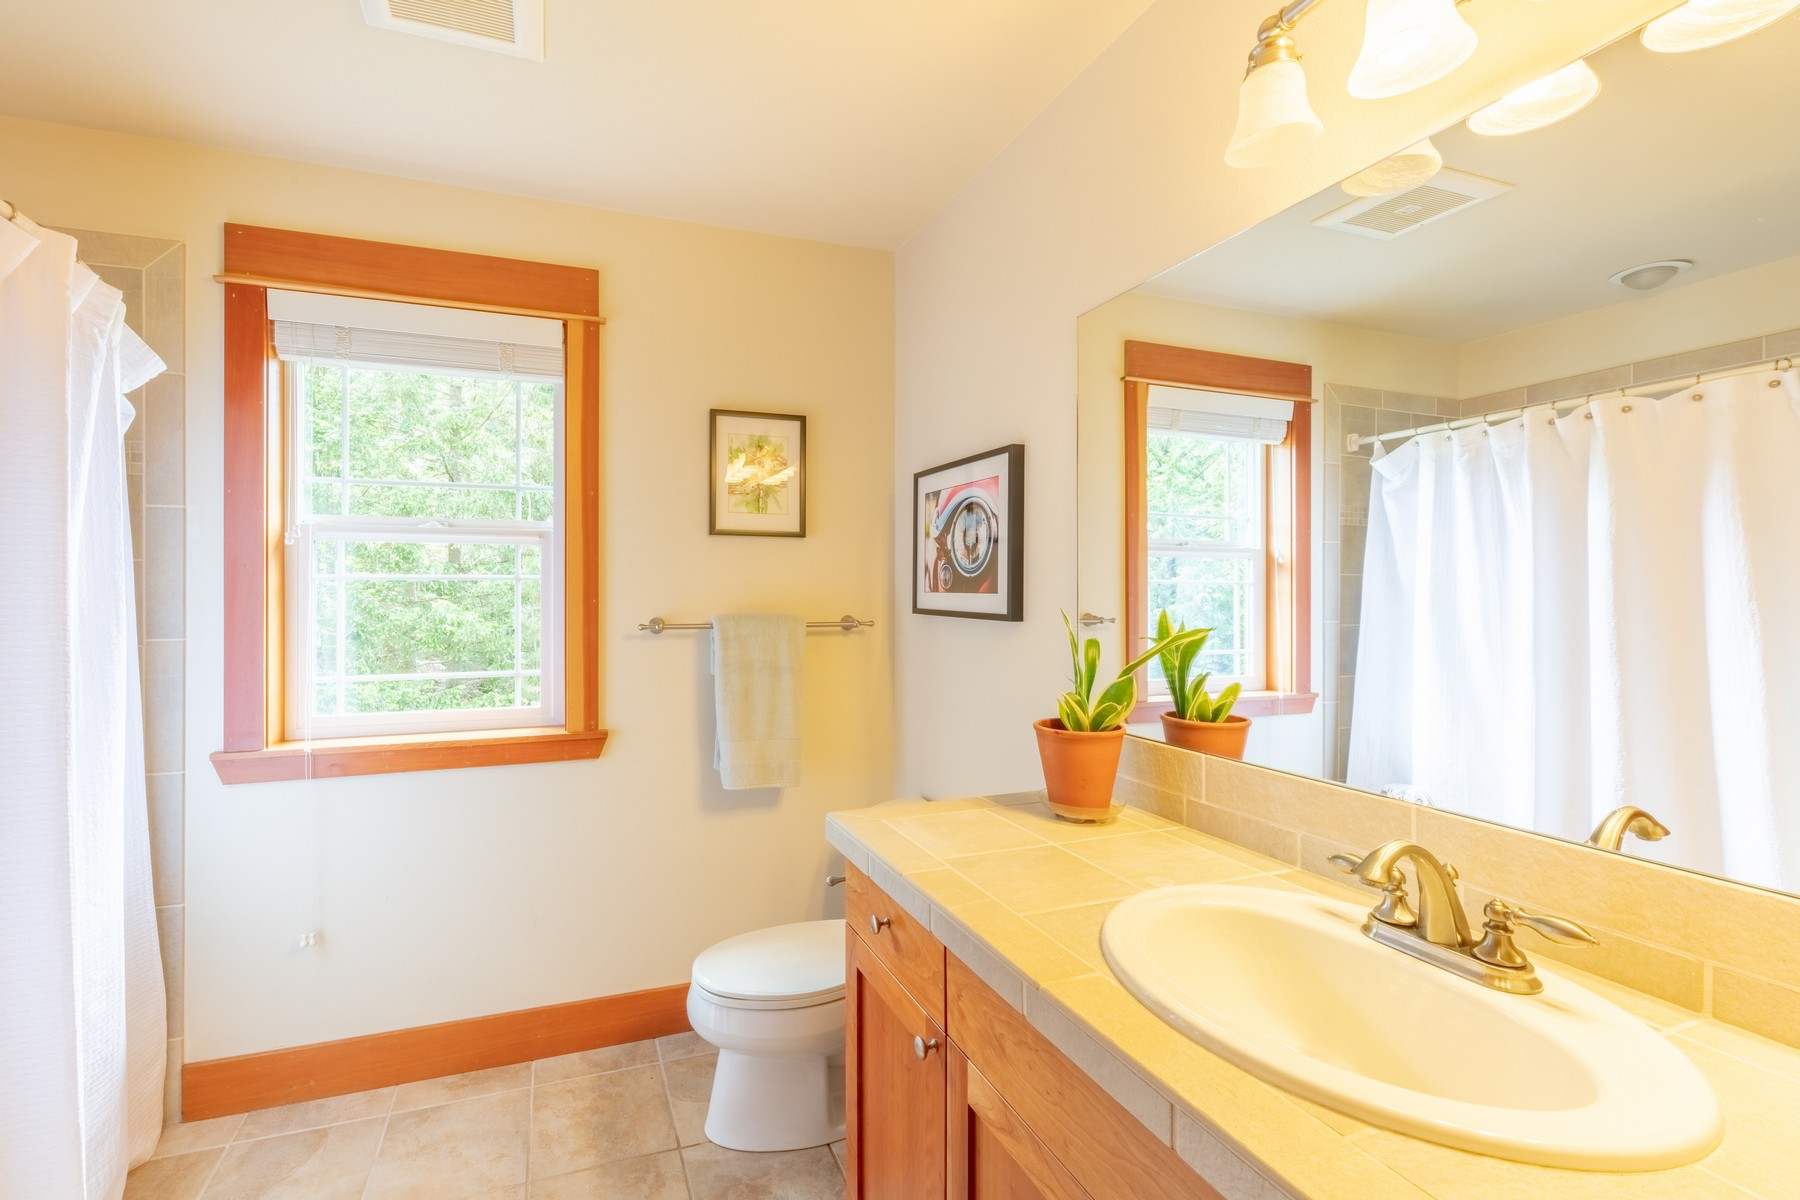 The  second  floor  full  bath  incudes  a  bathtub  and  shower  and  is  tiled  throughout.